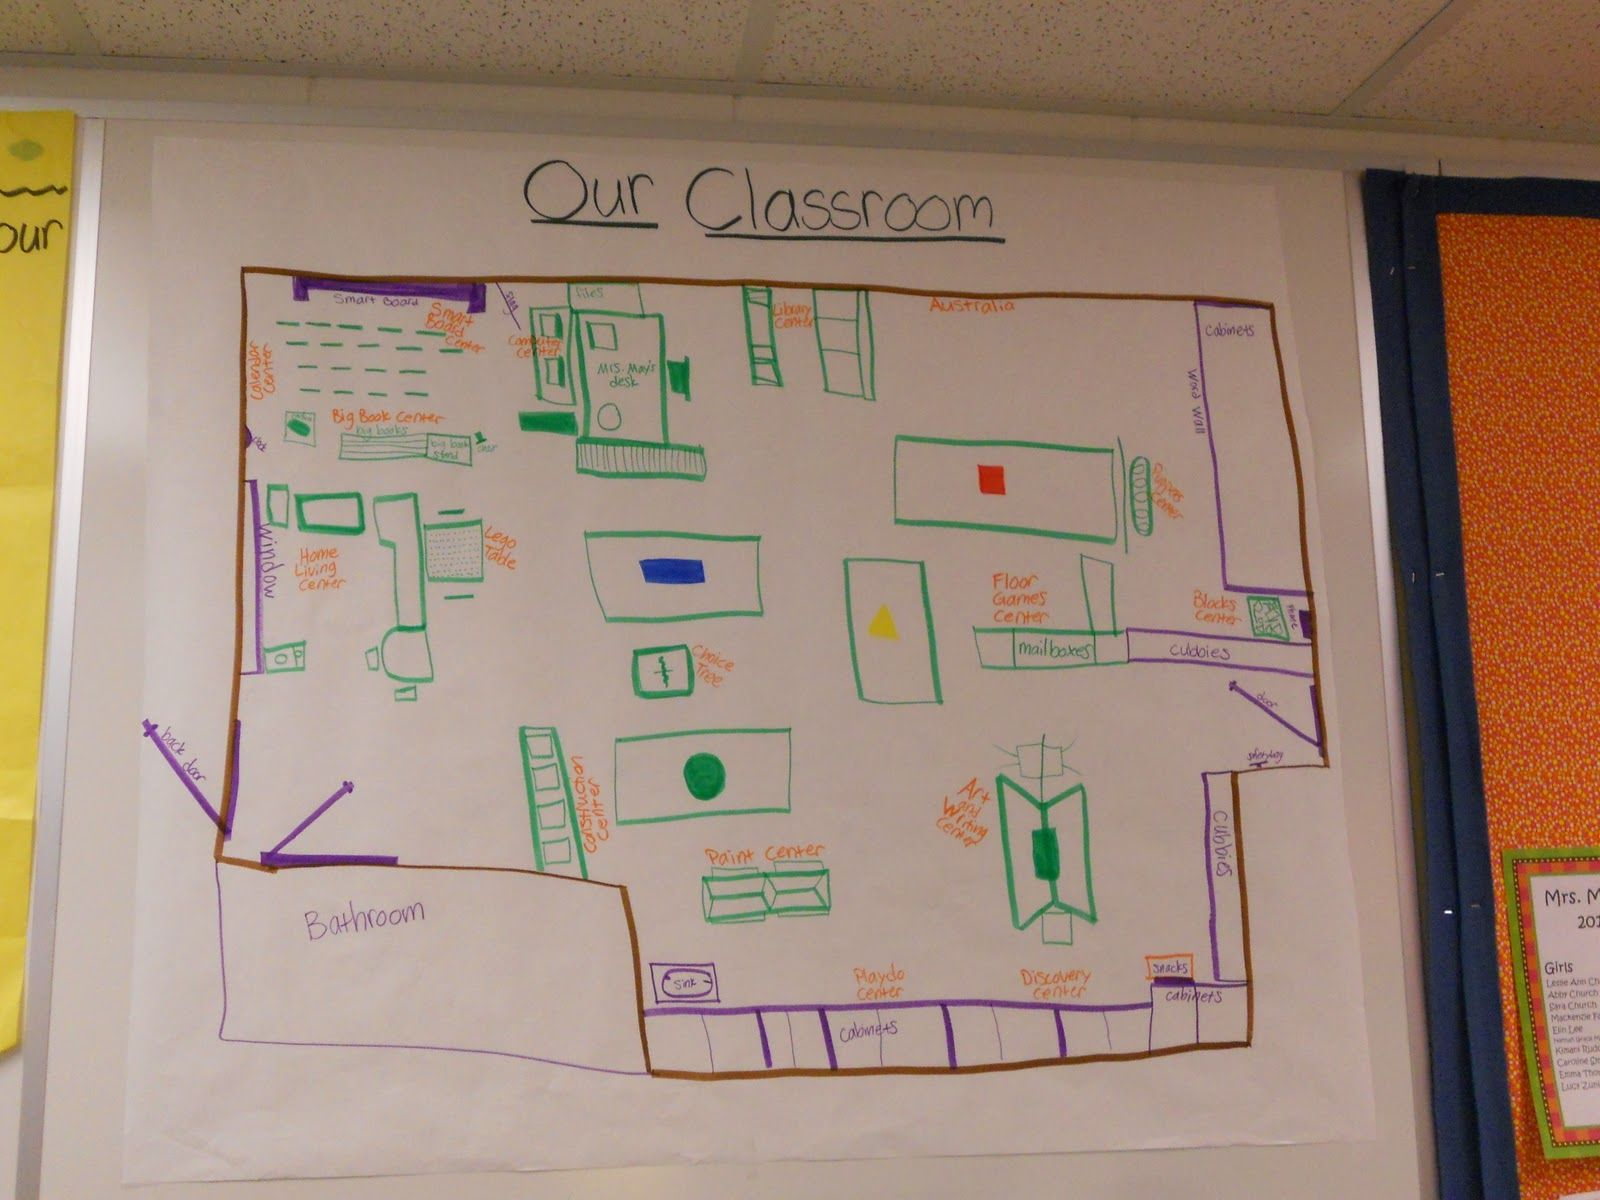 this is a great example of how to create a map of the classroom